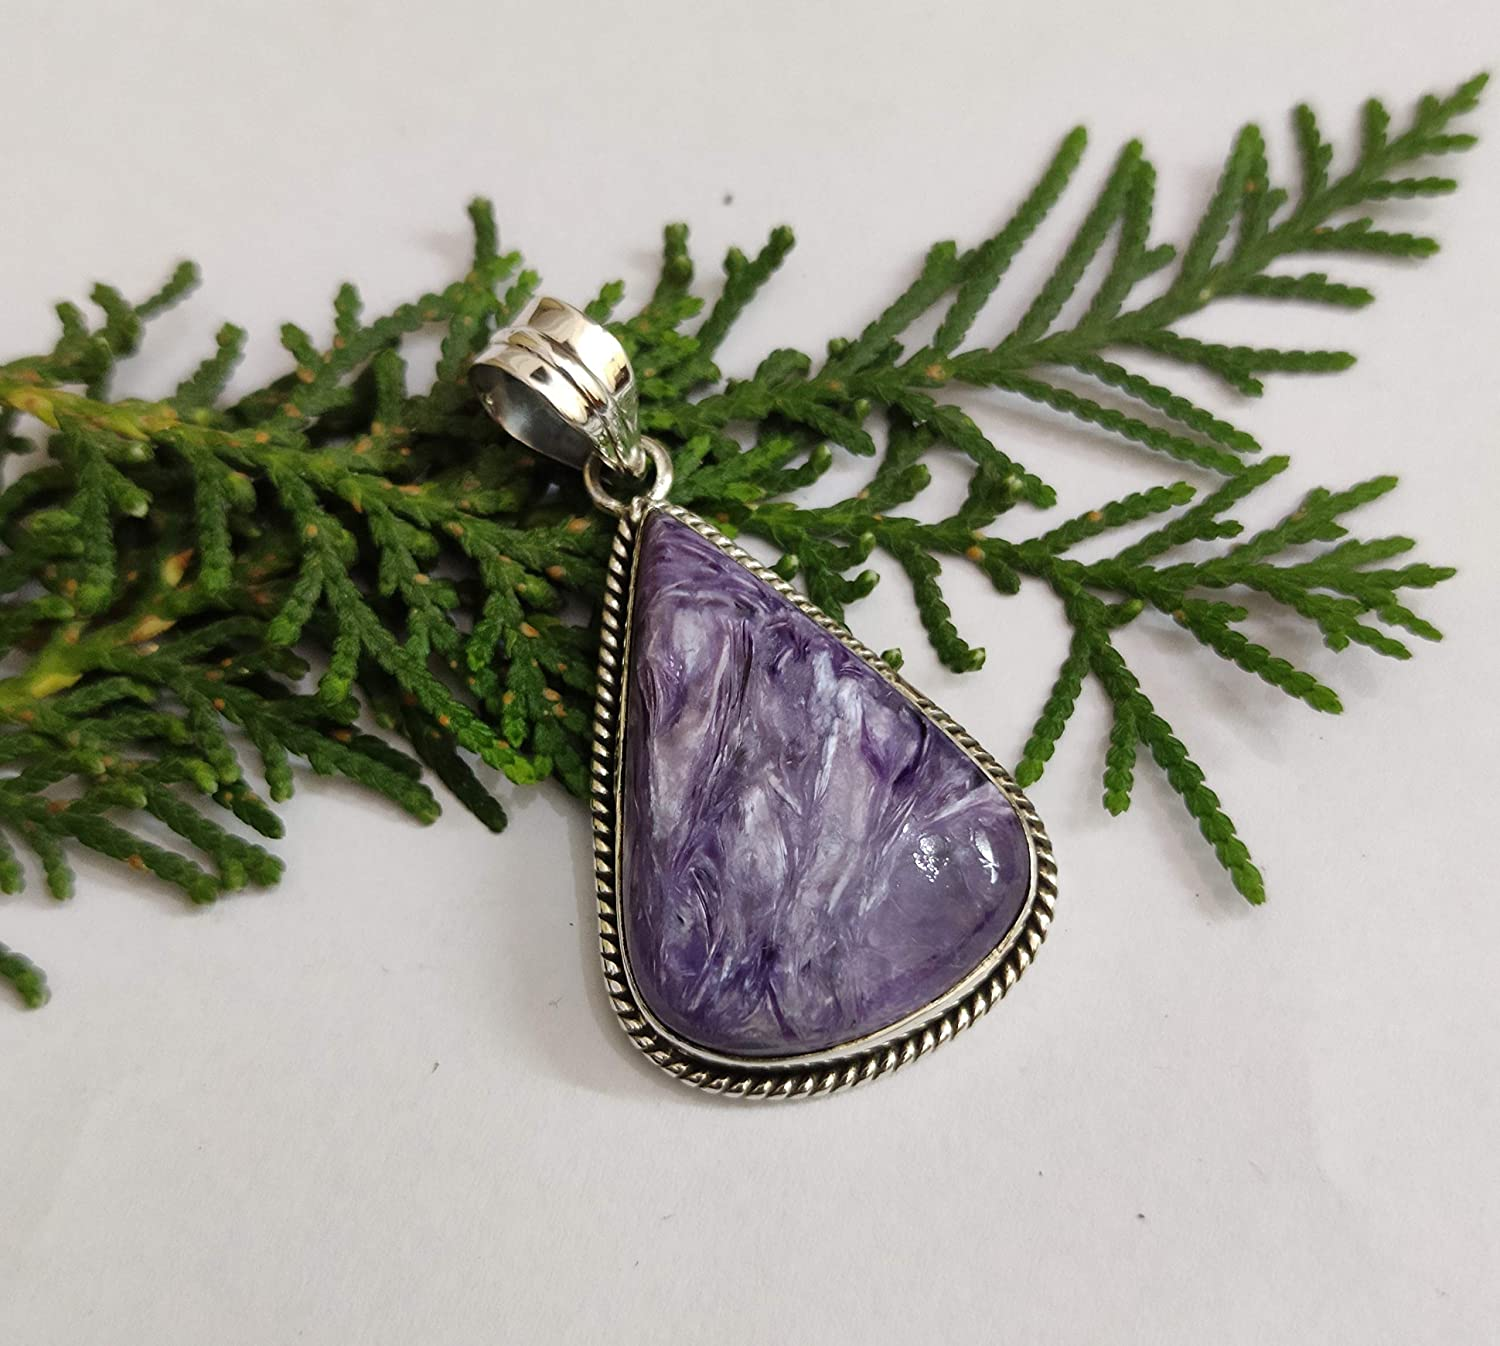 925 sterling silver and Charoite pendant necklace